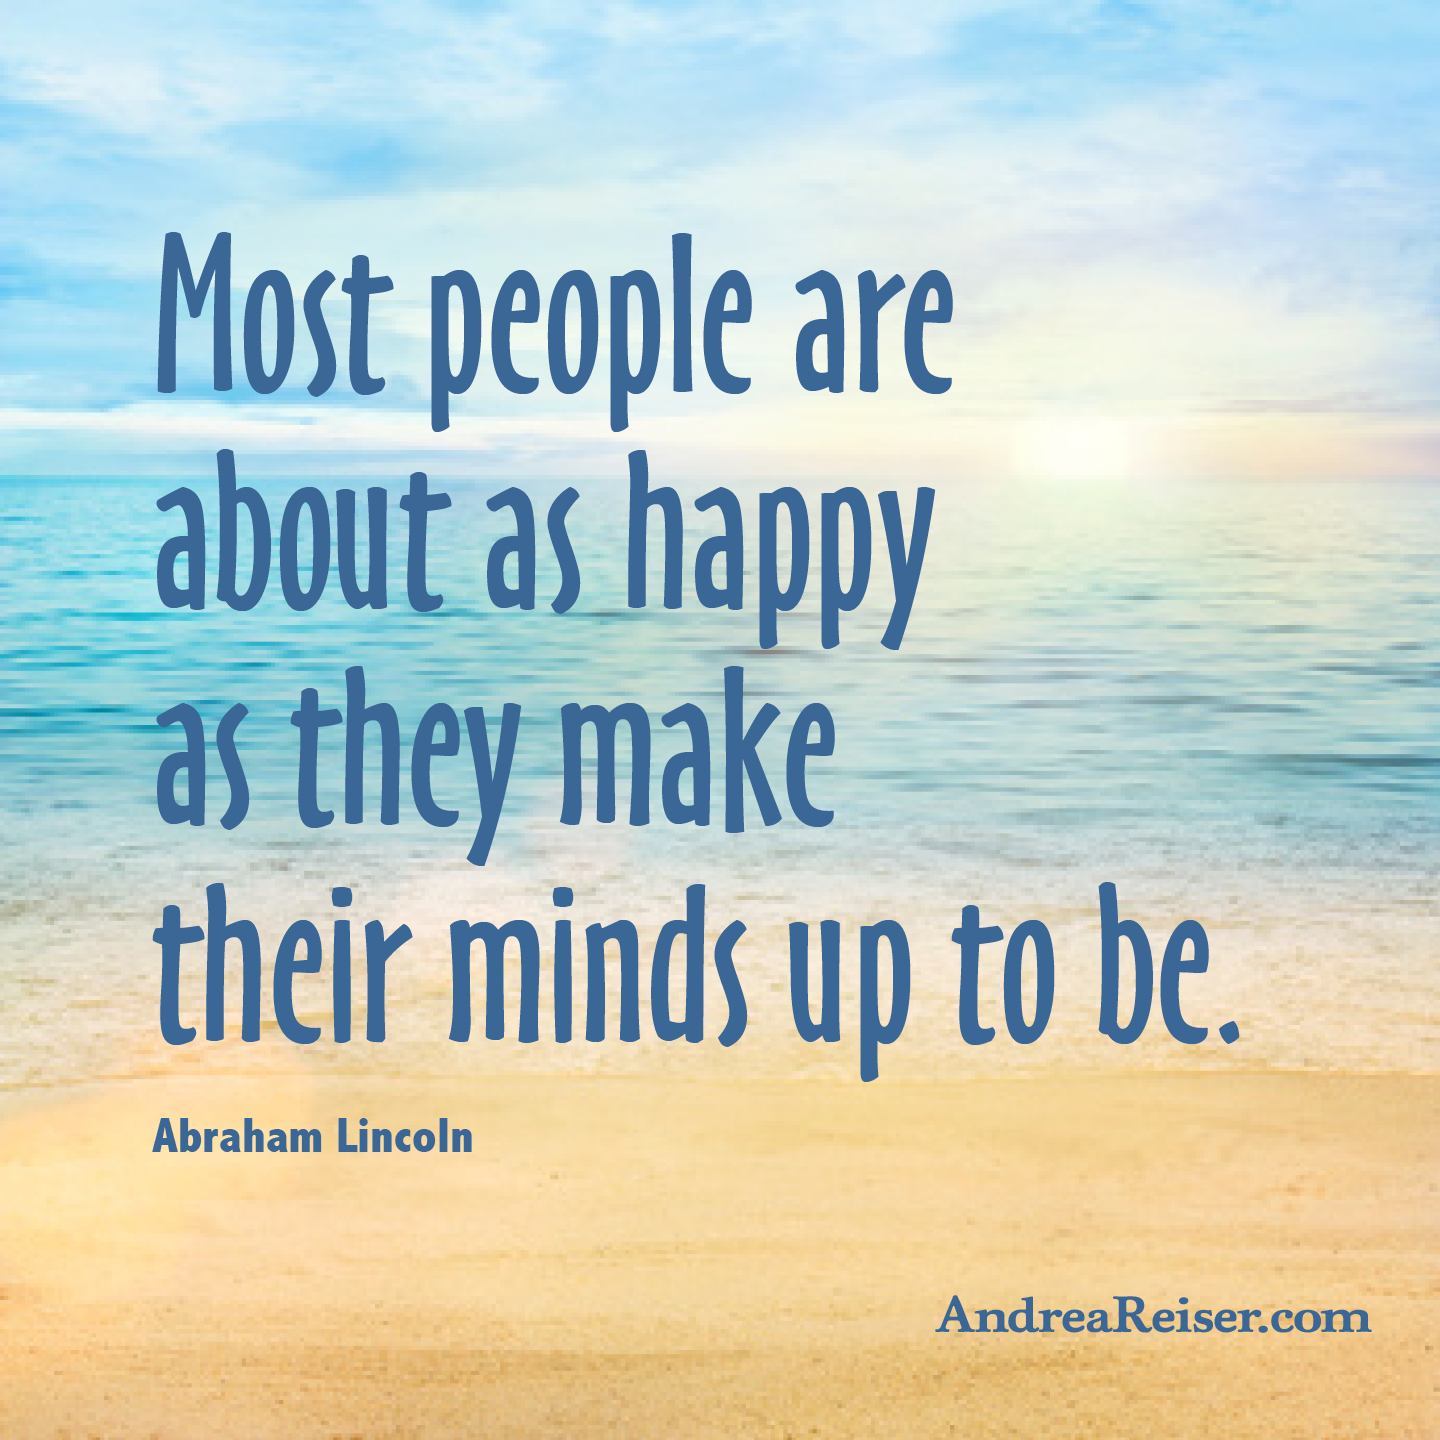 Make My Day >> Most people are about as happy as they make their minds up to be - Andrea Reiser Andrea Reiser